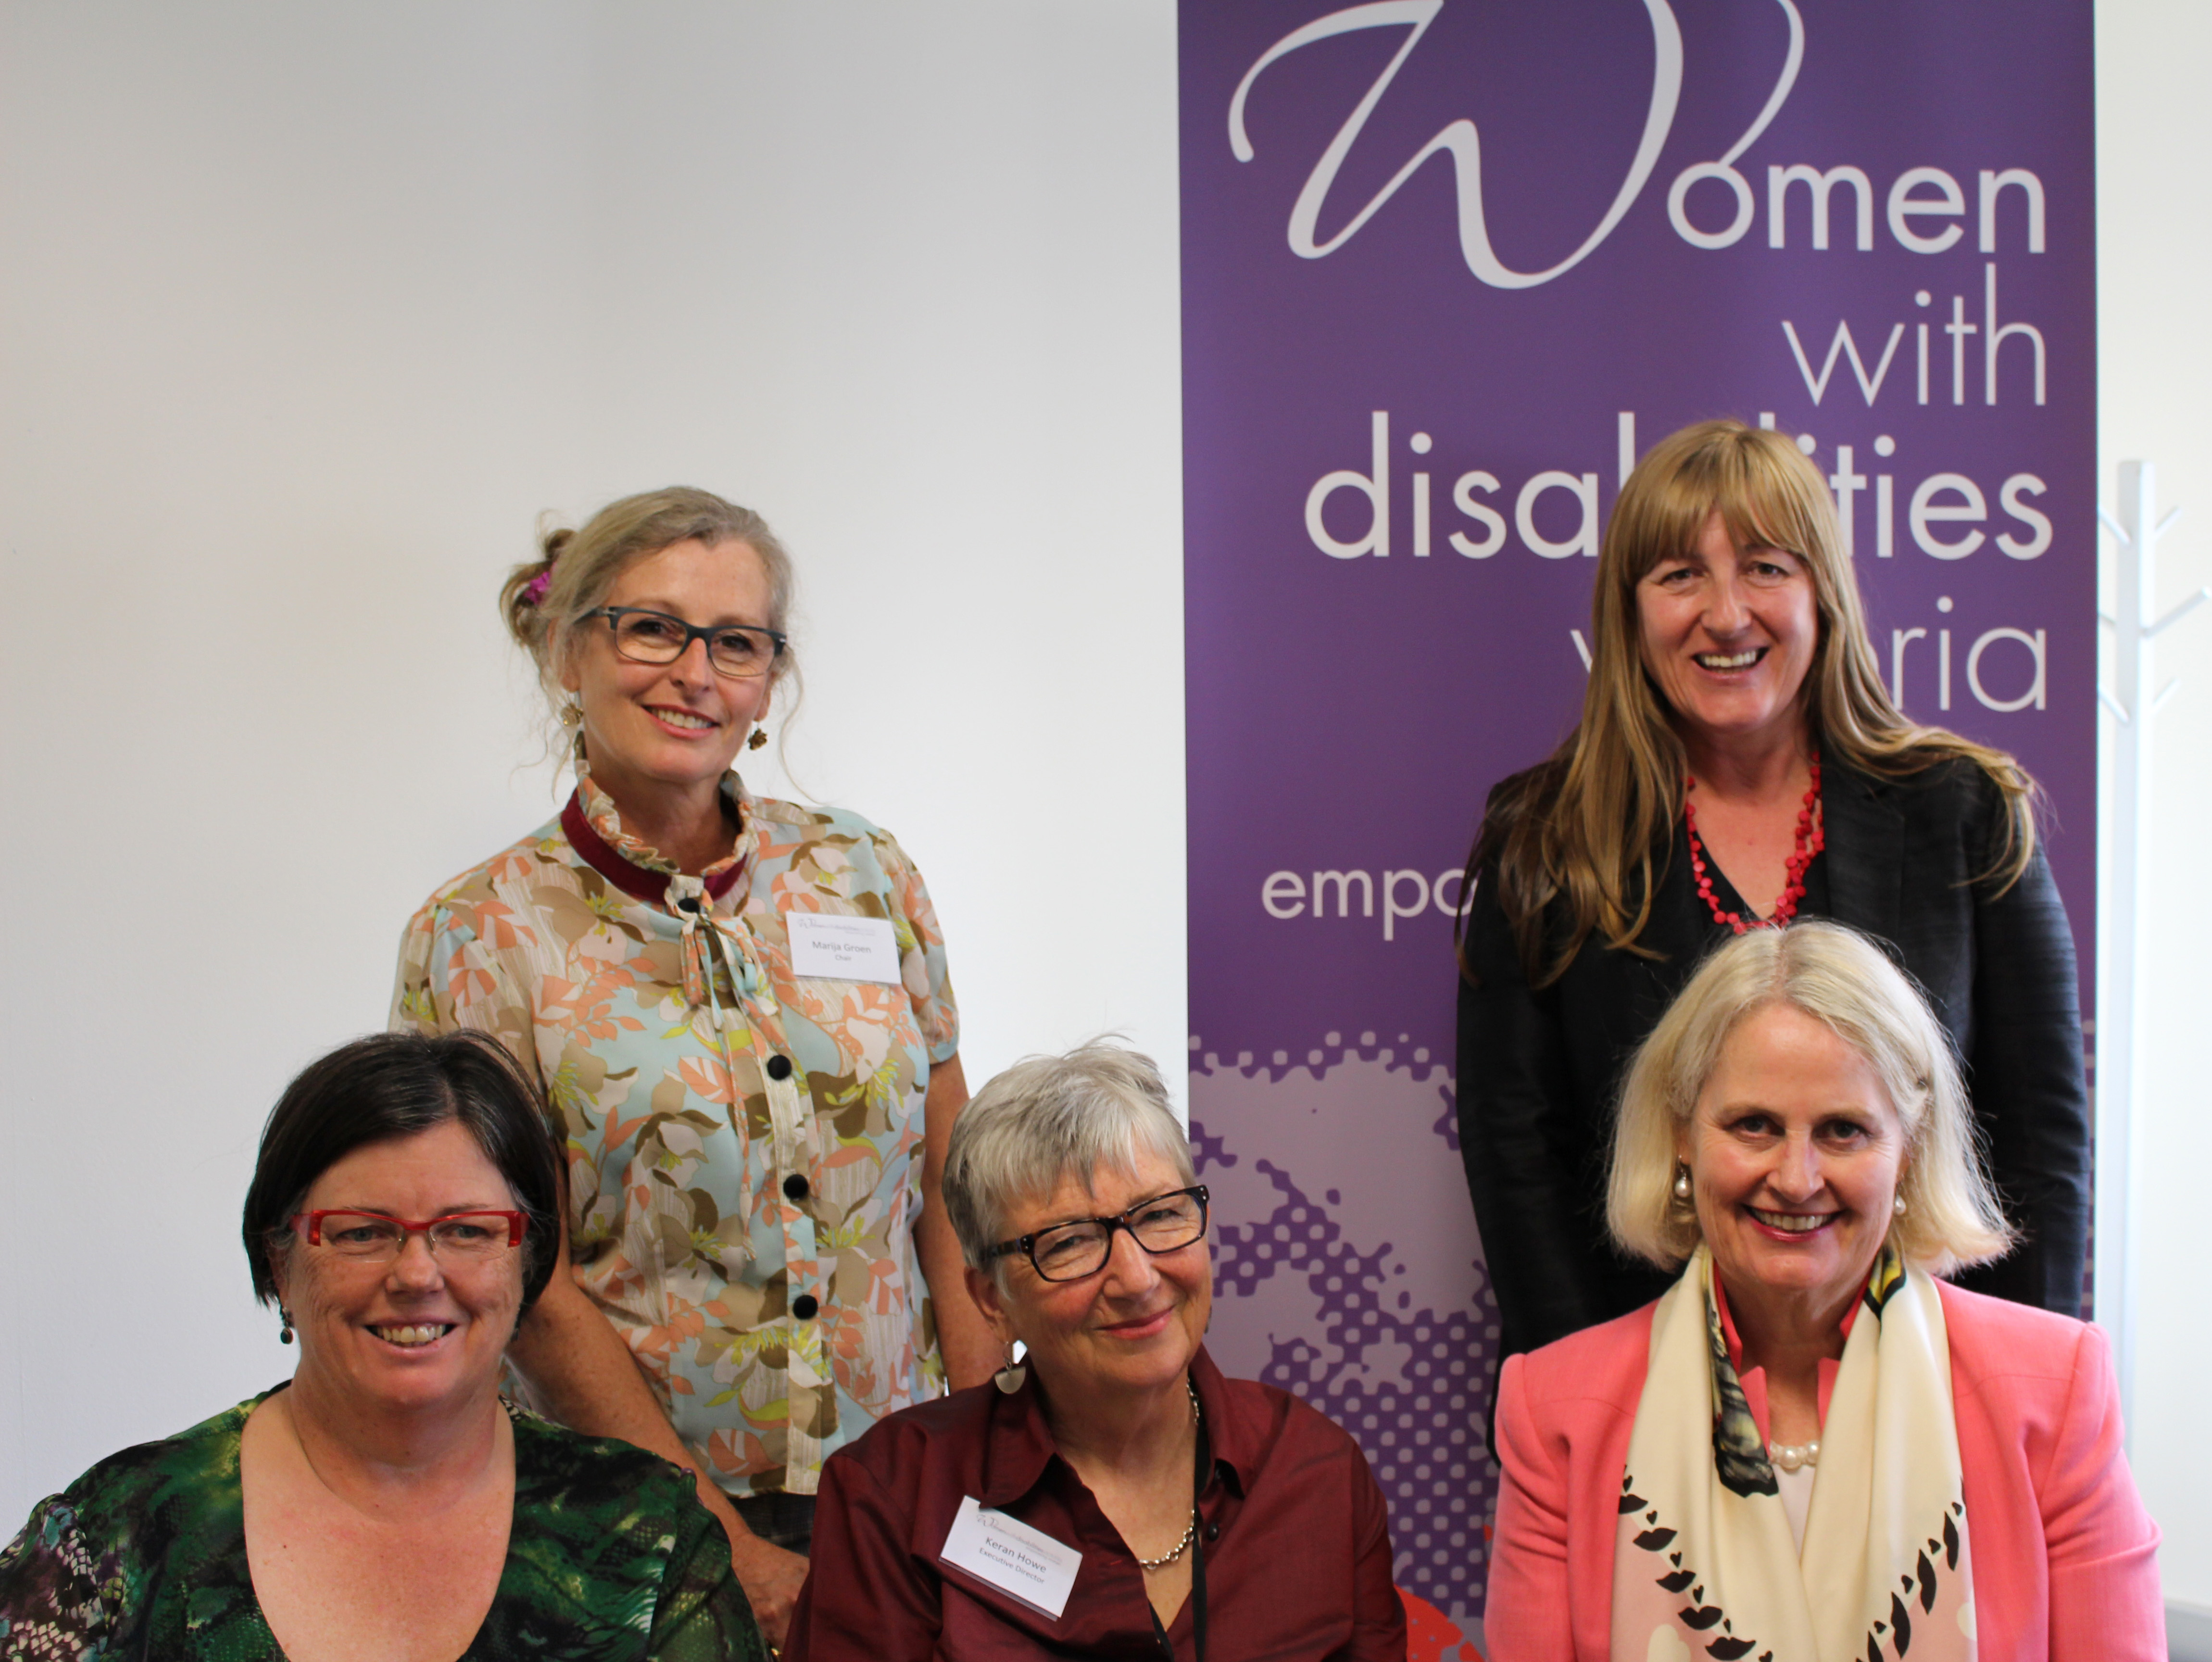 Image of Colleen Hartland, Danielle Green and Andrea Coote with WDV Chair Marija Groen and Keran Howe